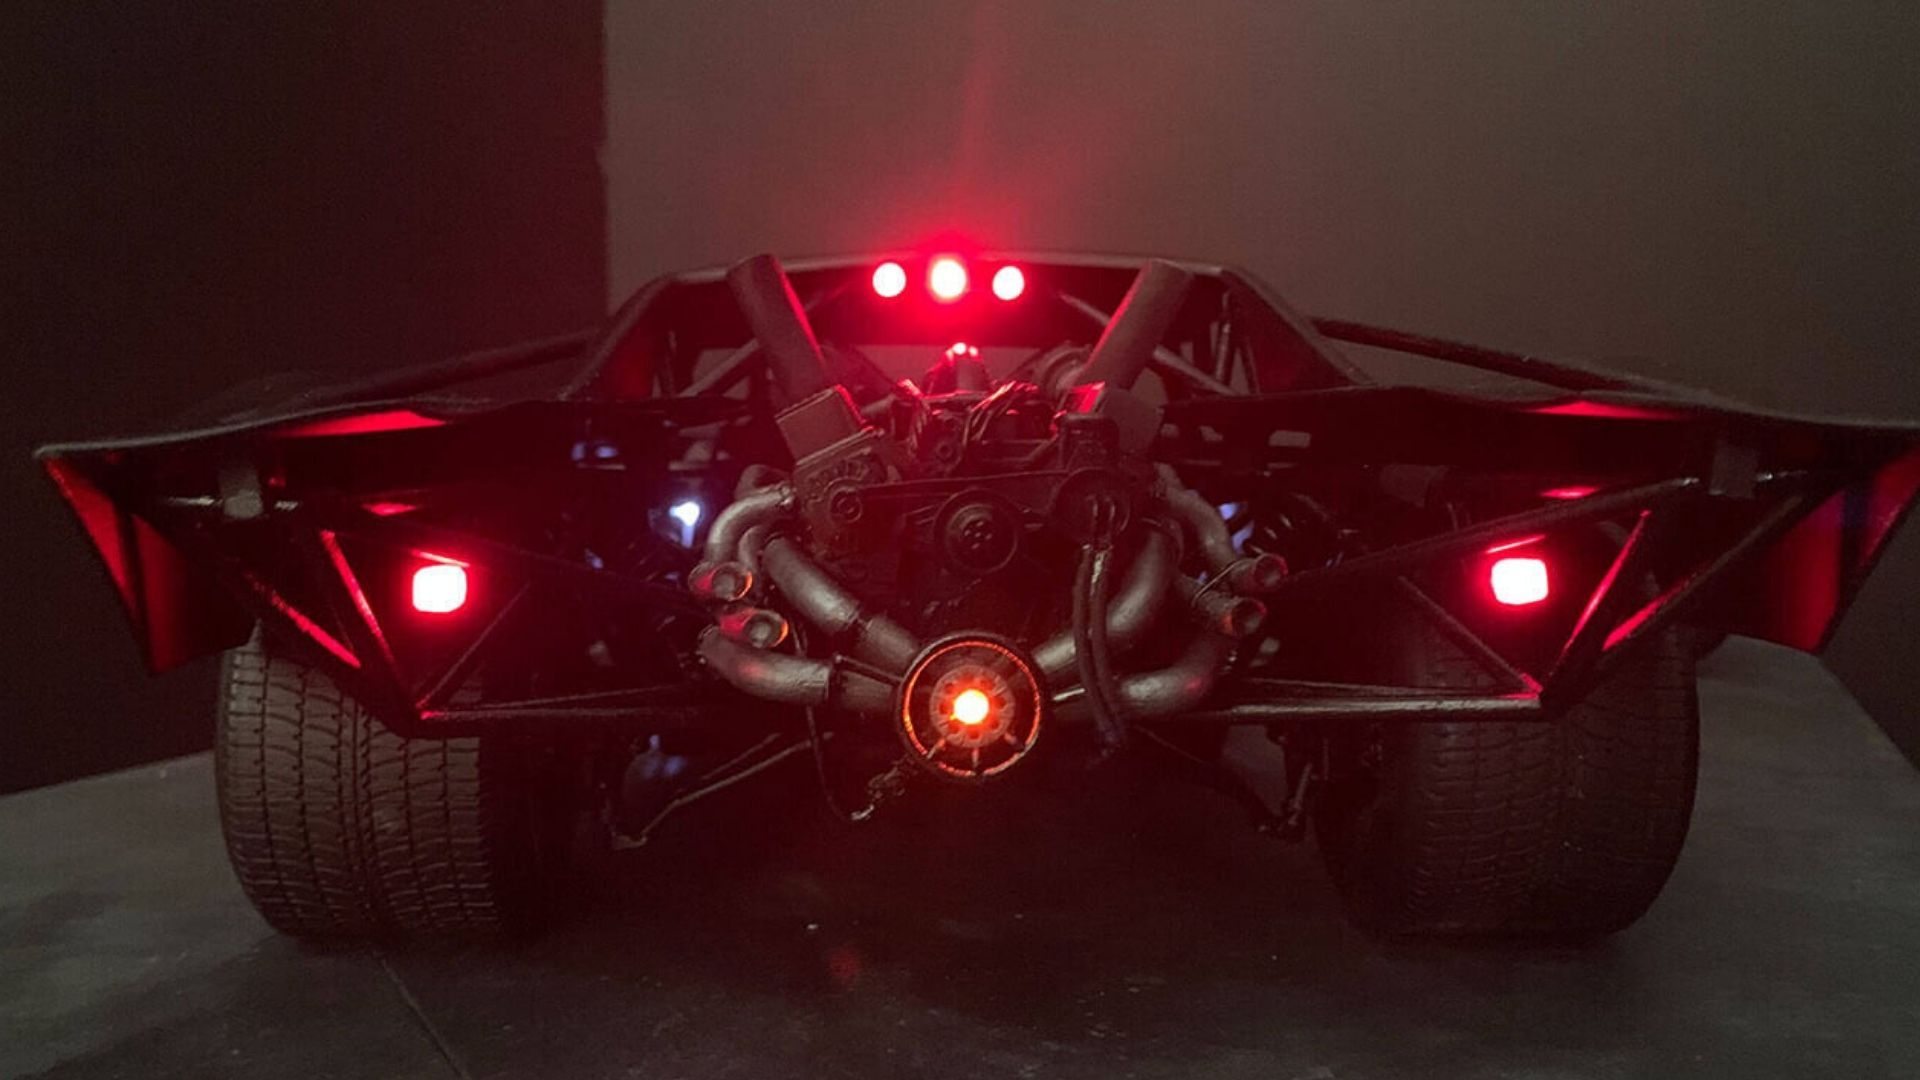 We Finally See The Disappointing New Batmobile Uncloaked